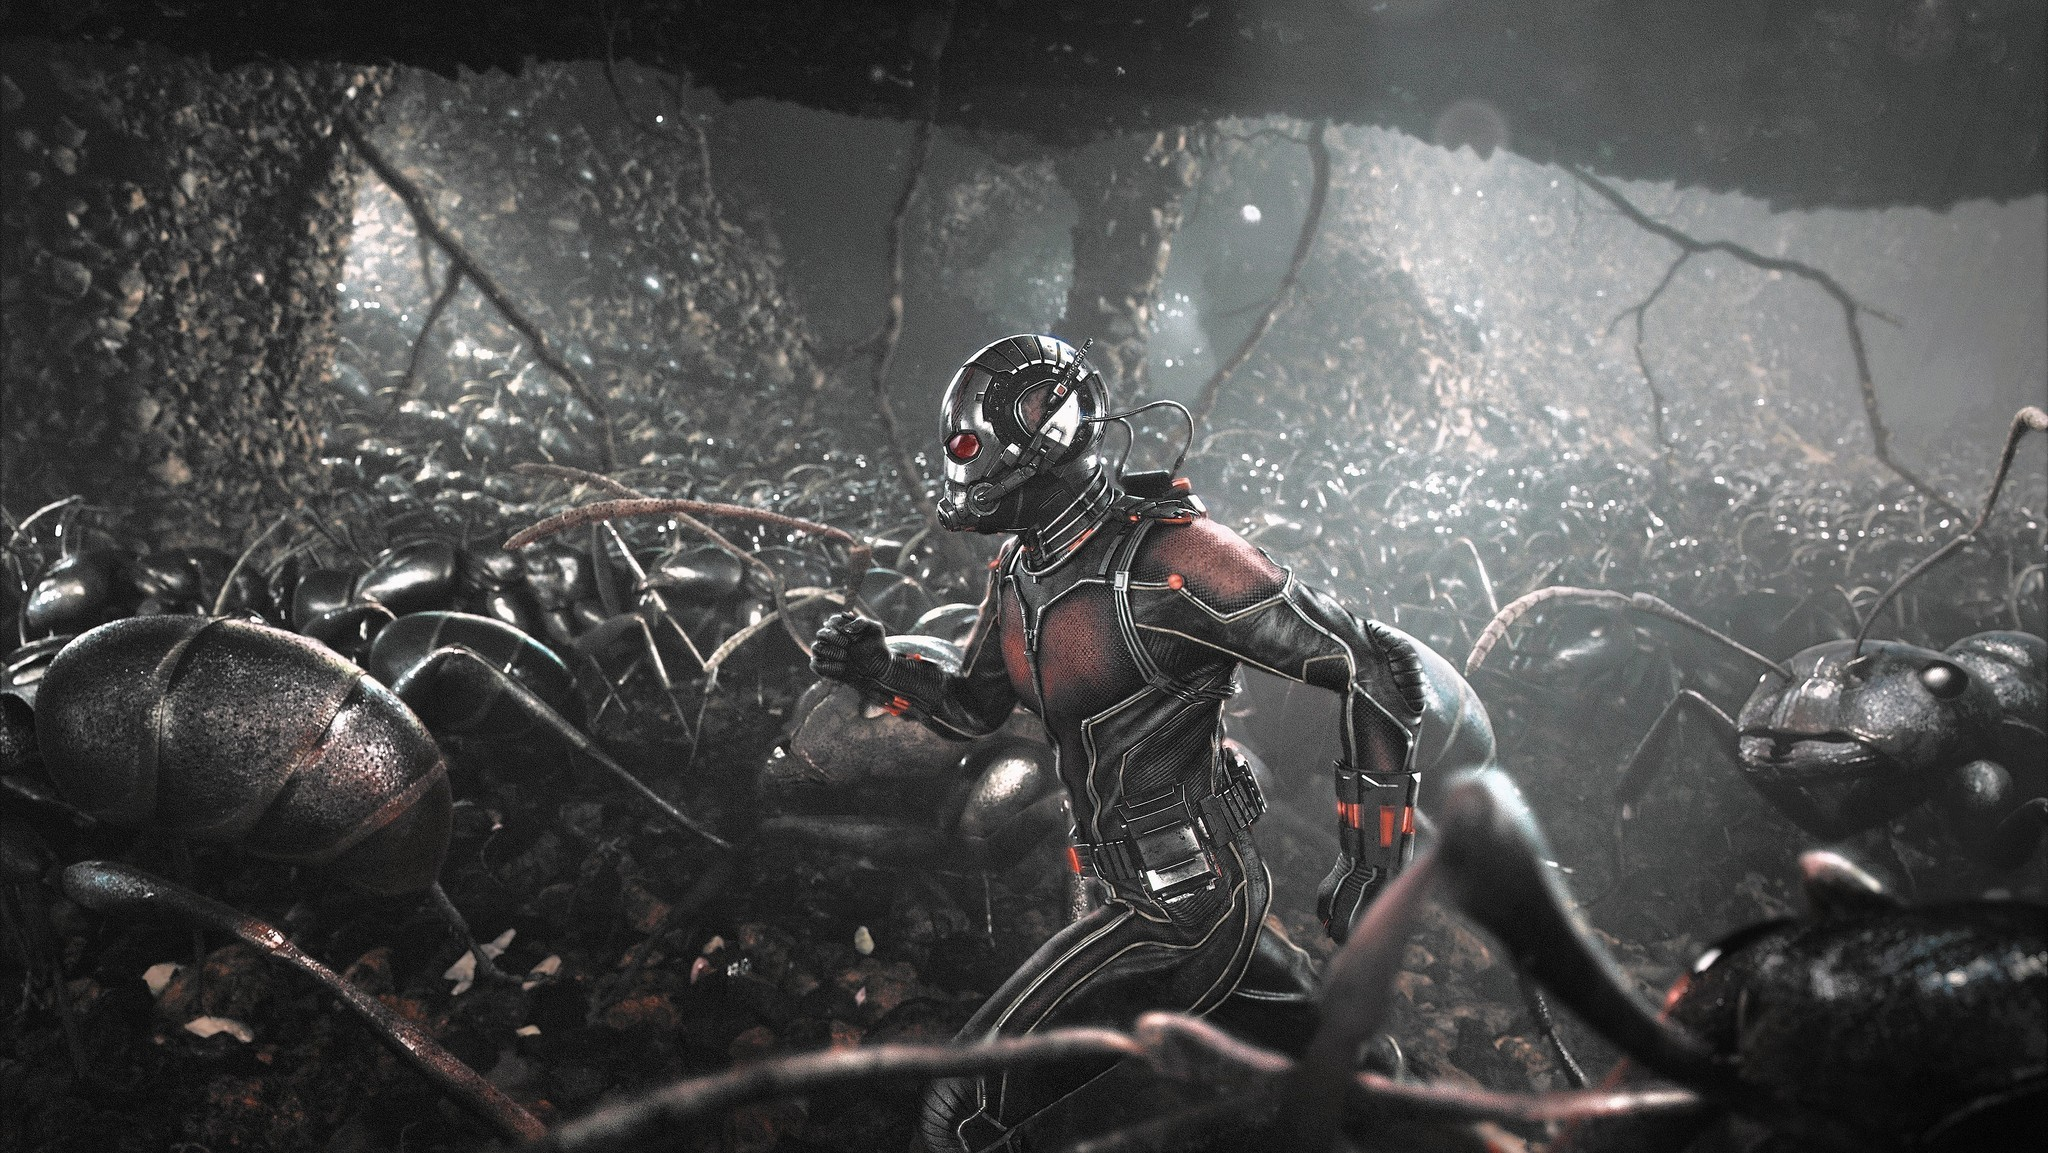 Director Peyton Reed says he'll show you how Ant-Man is cool - Los Angeles Times